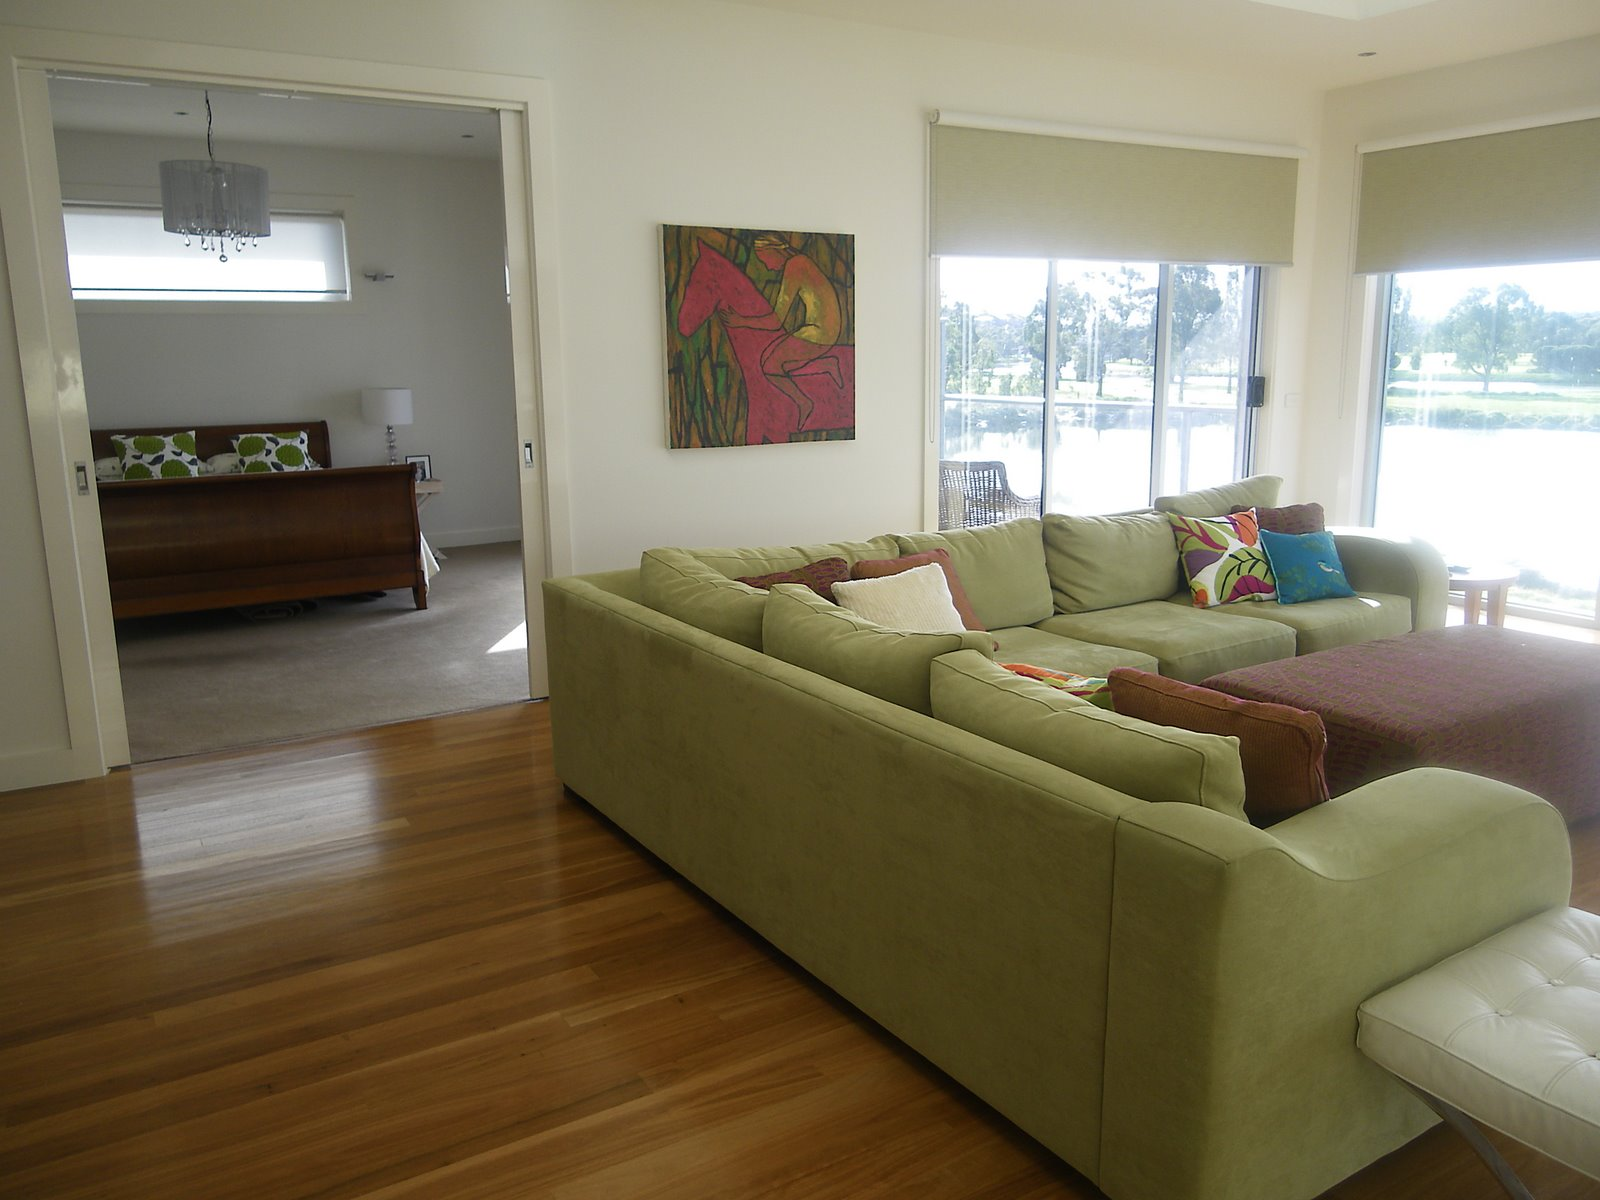 Decorating A Modern Home Decorating A Green Couch